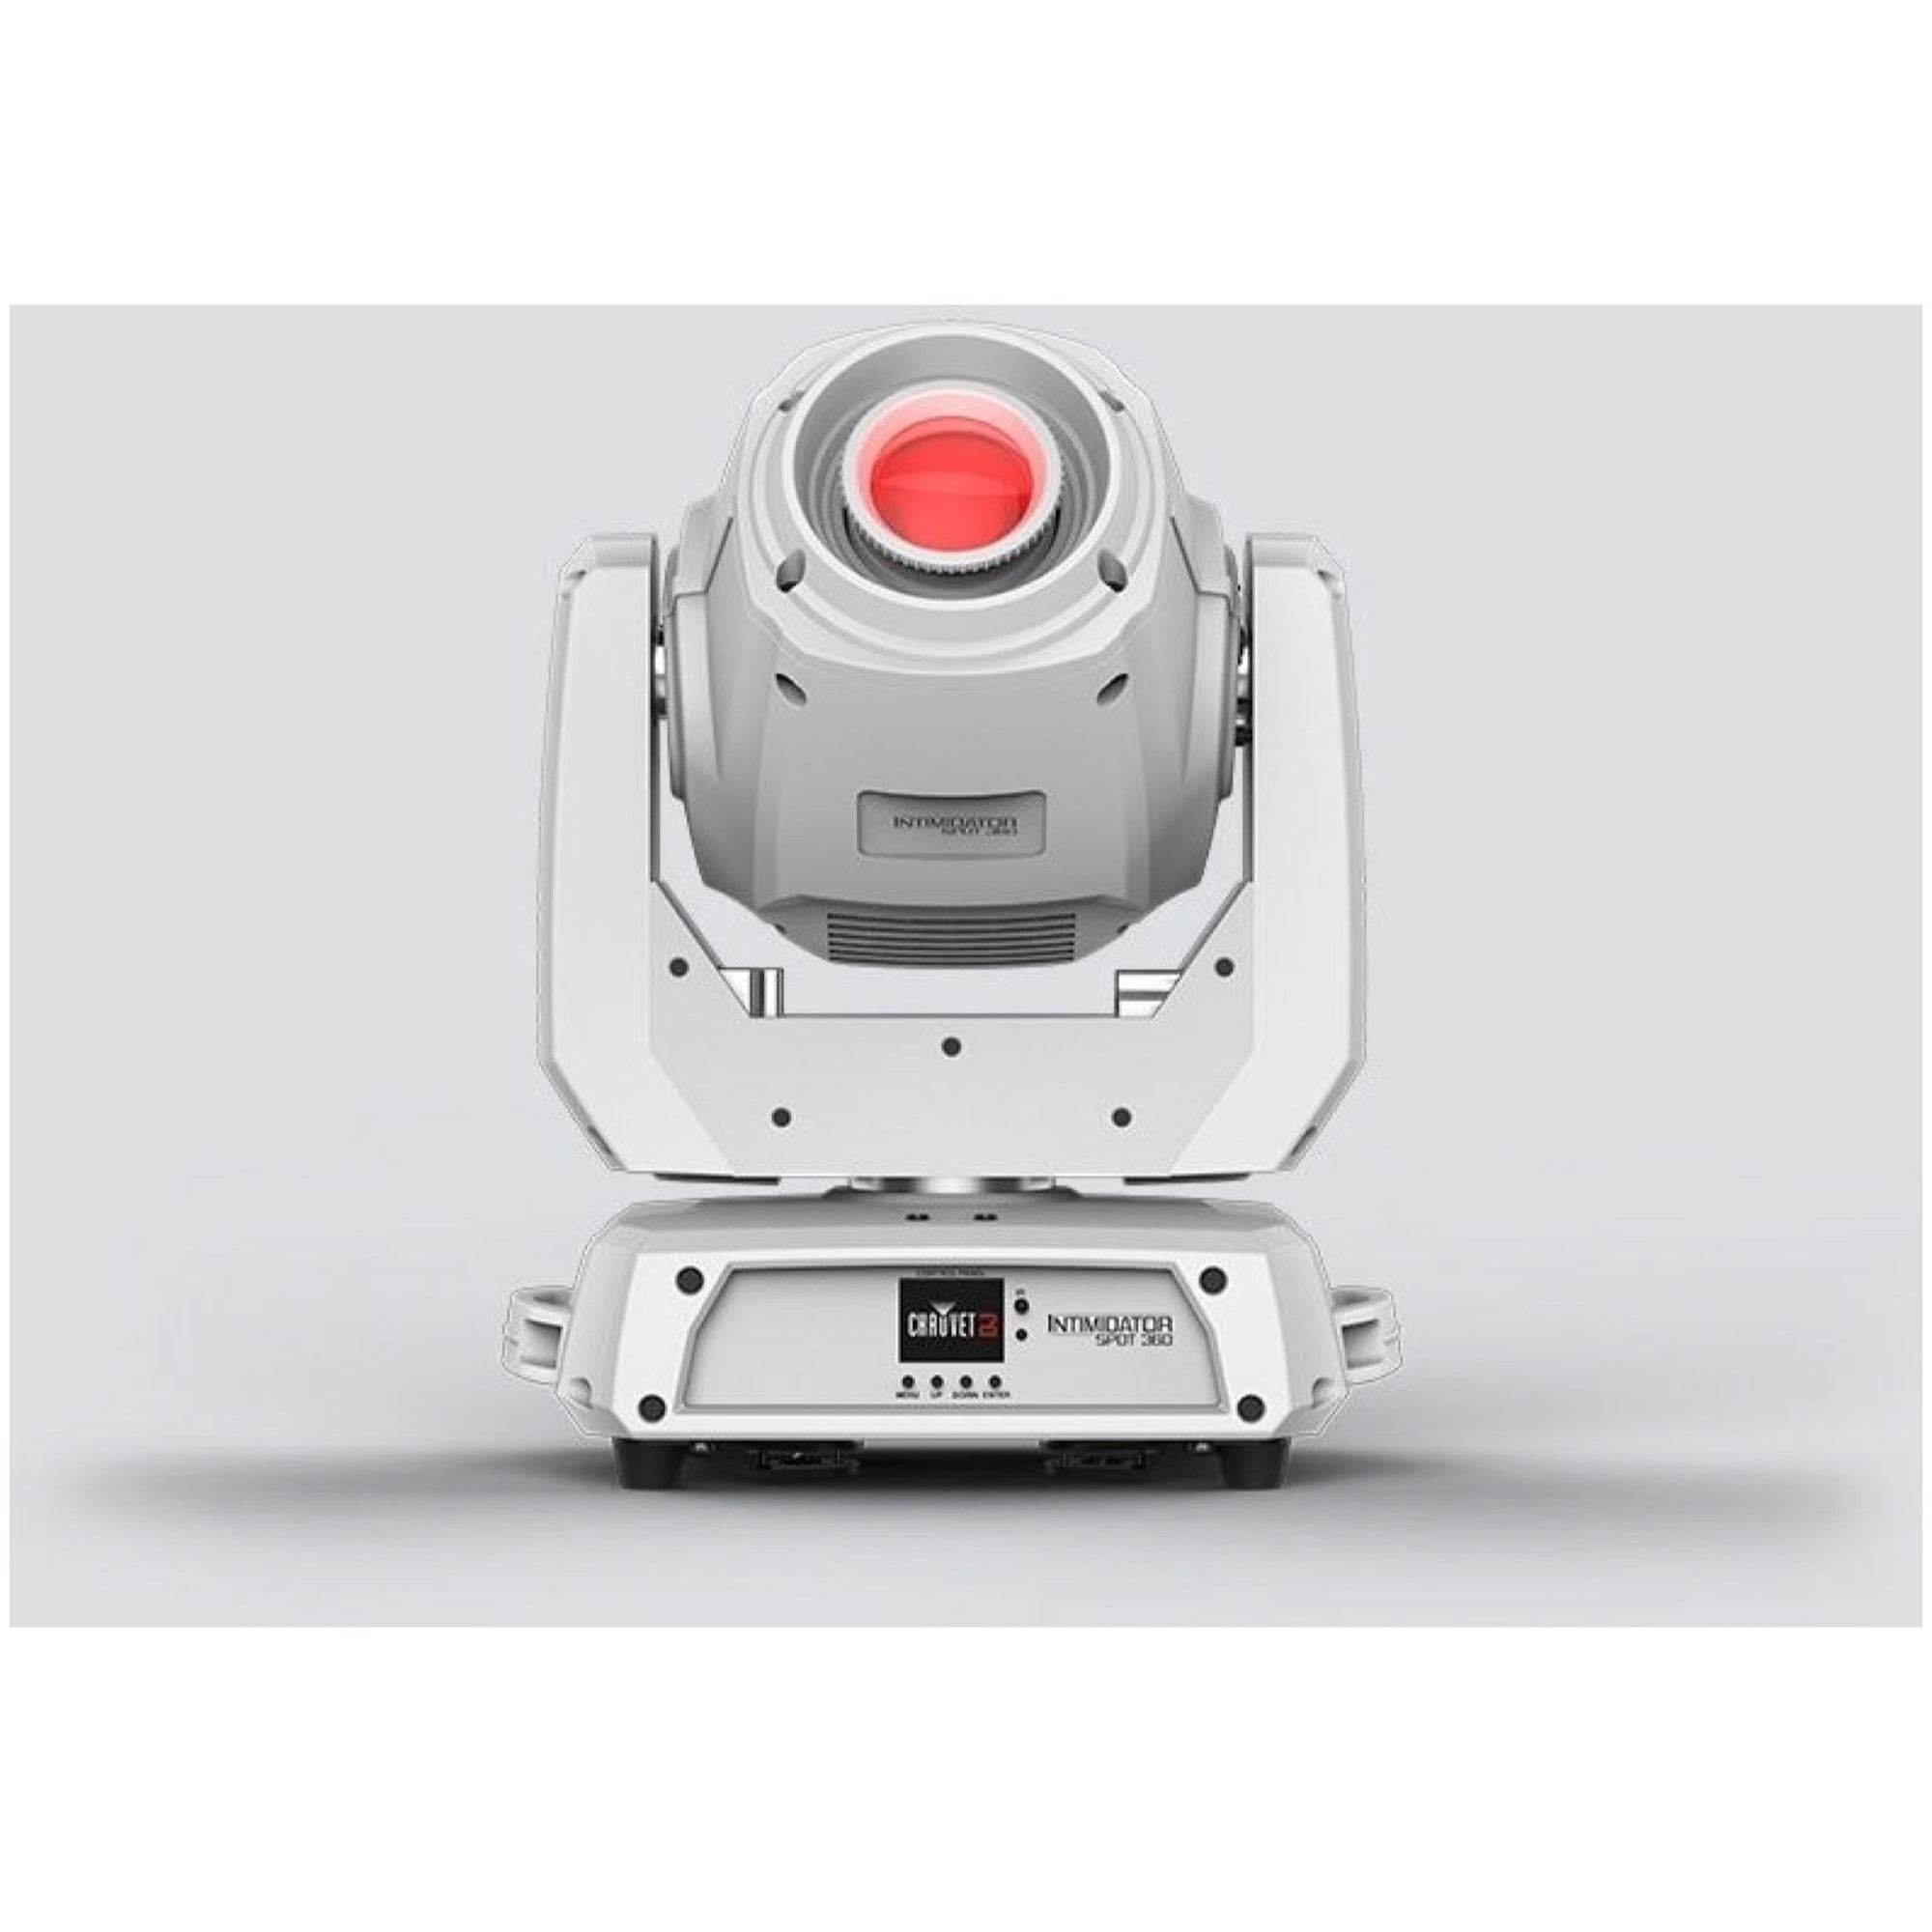 Chauvet Intimidator Spot 360 Light, White